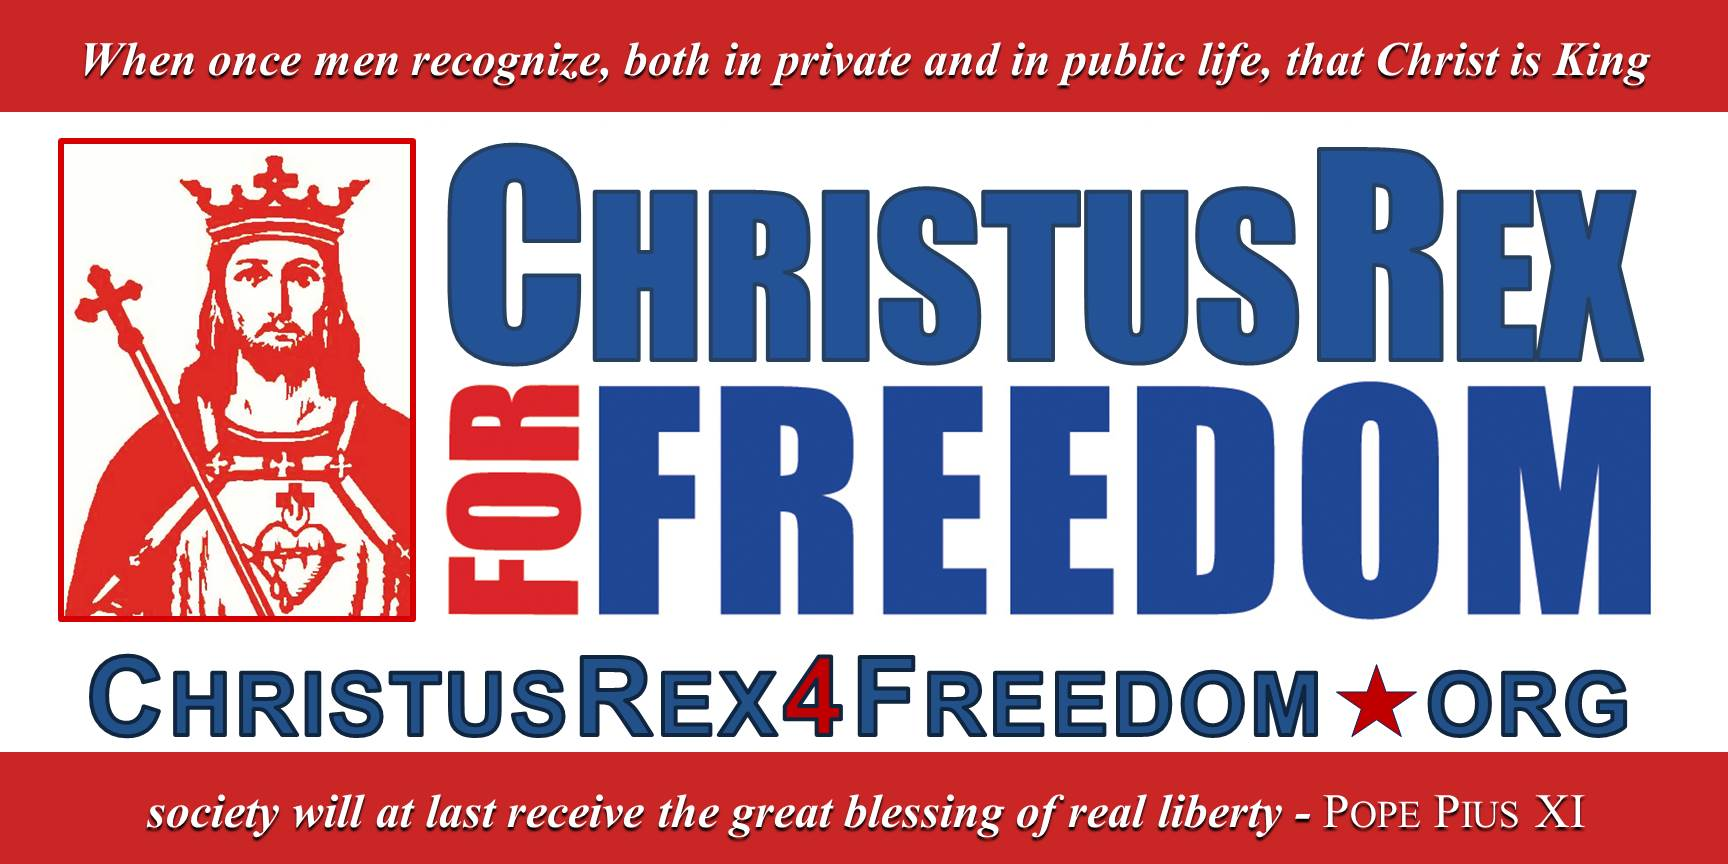 ChristusRex4Freedom